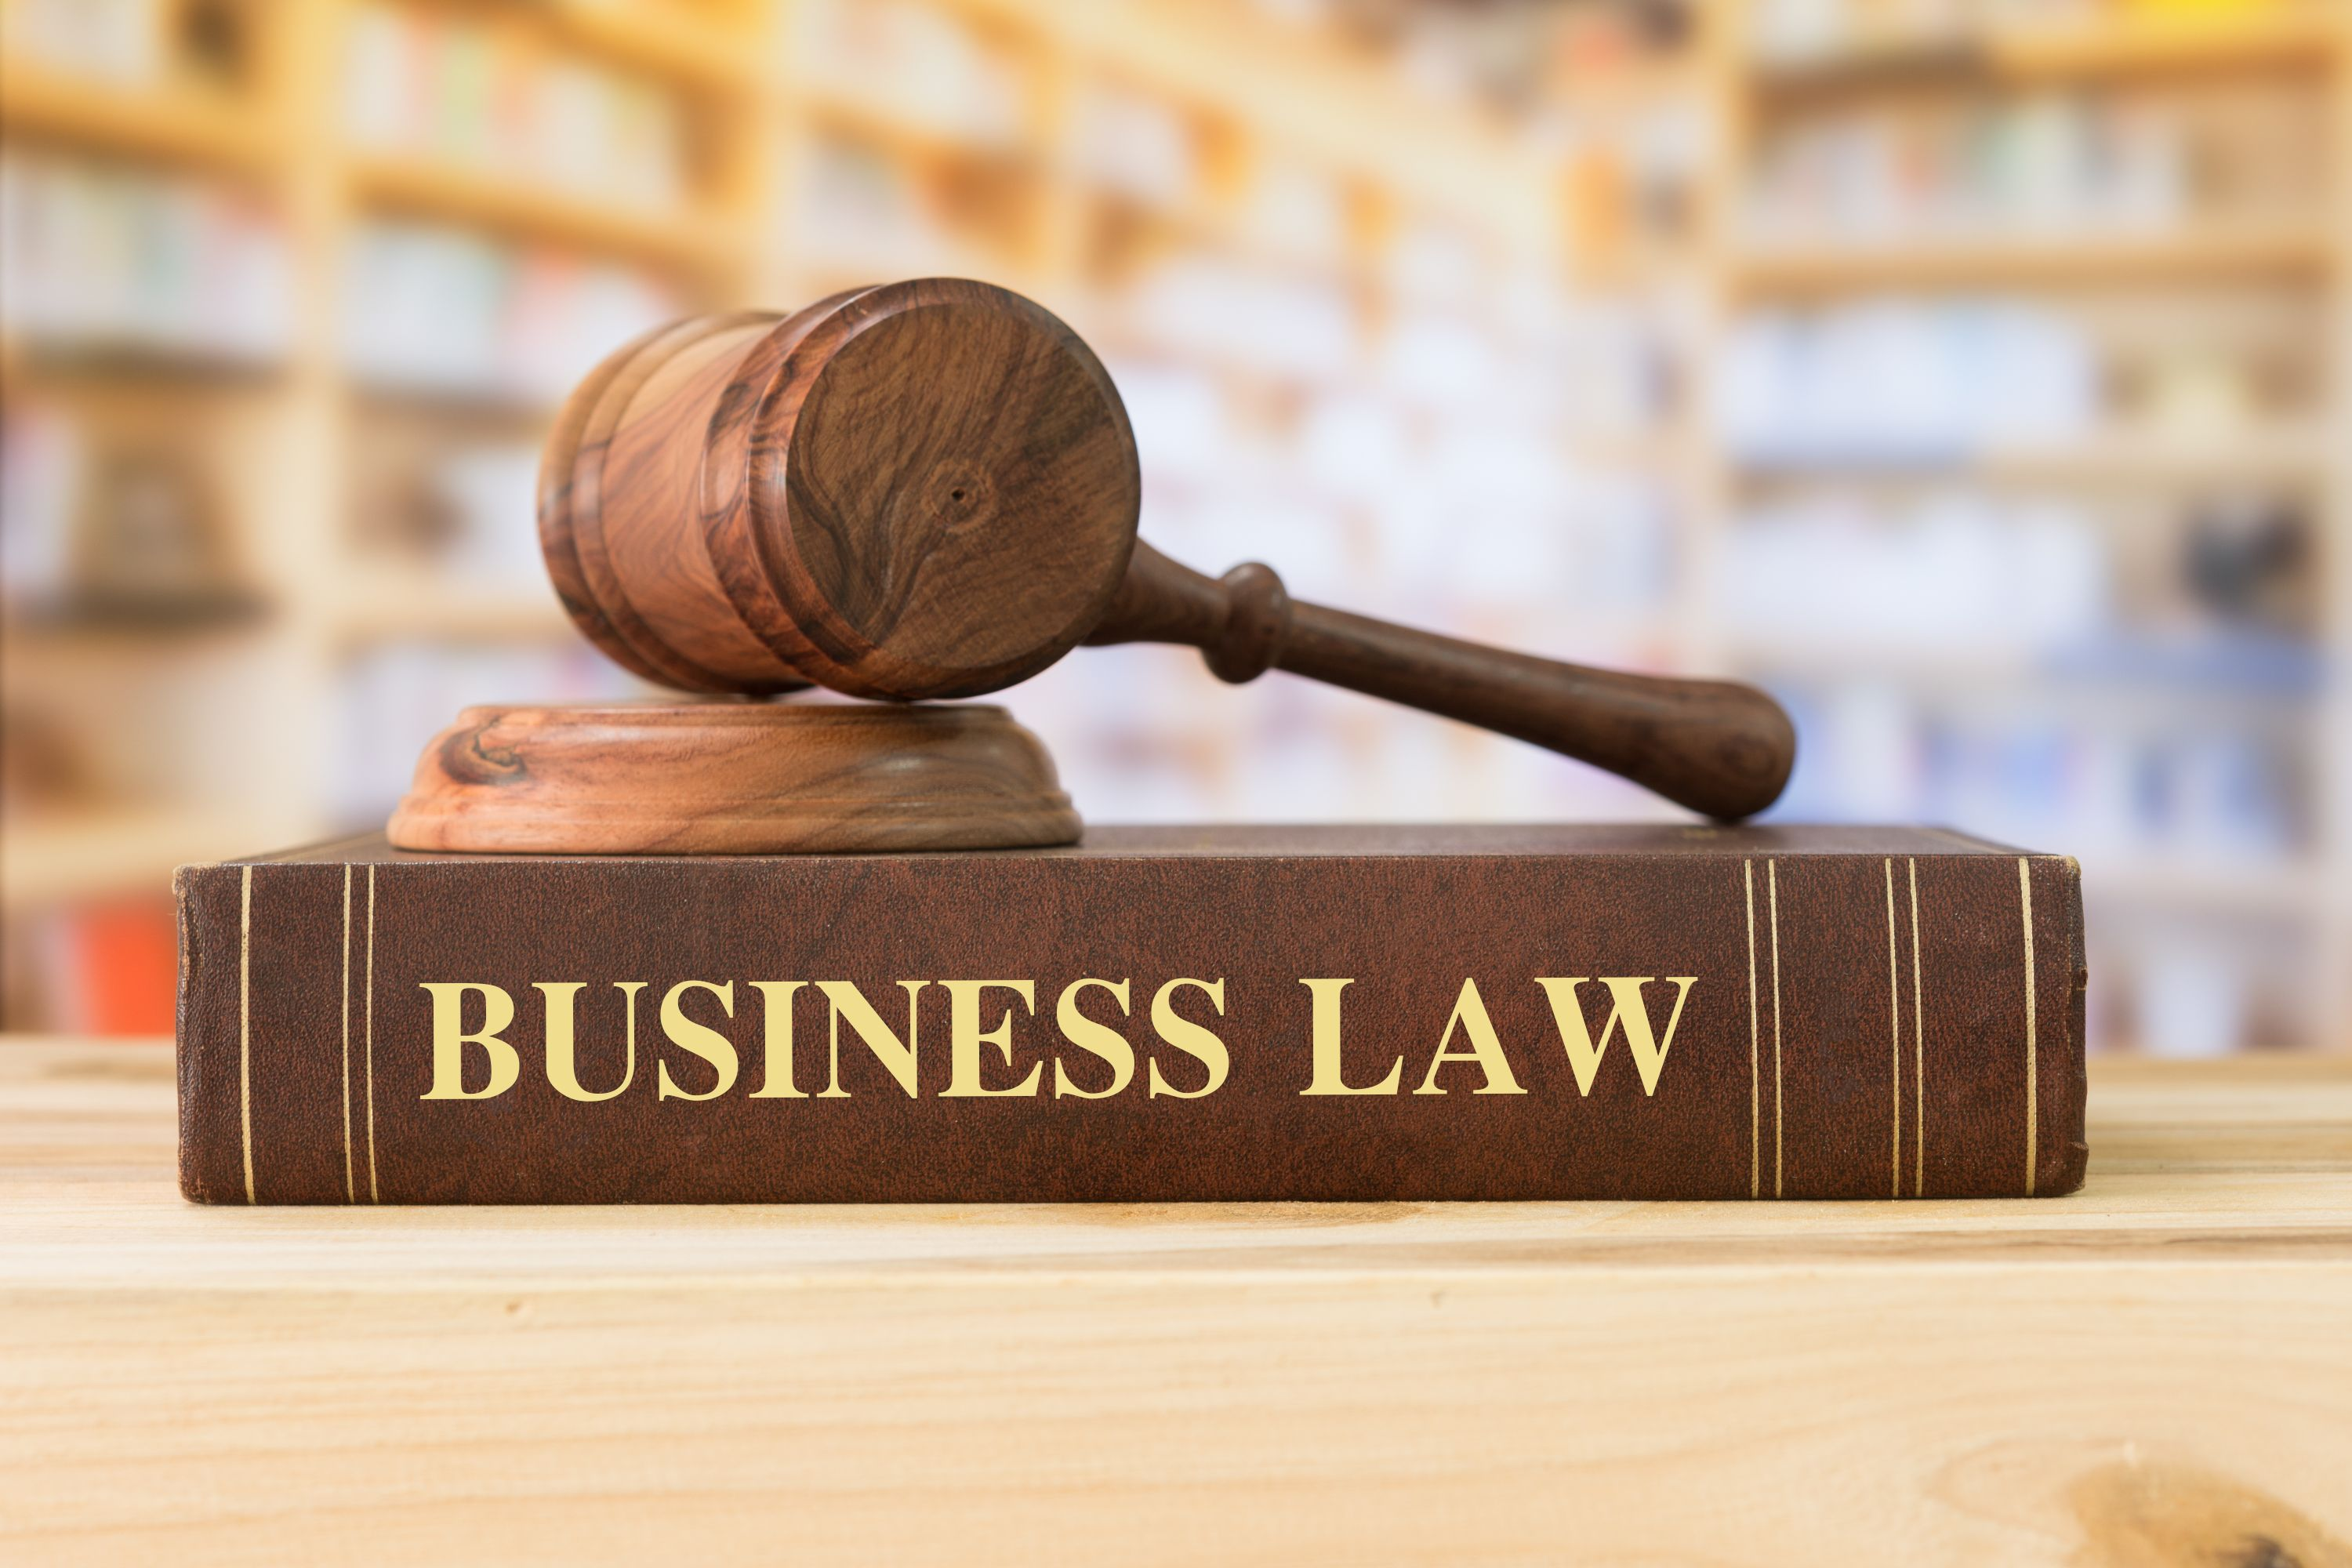 best-attorneys-lawyers-business-law-corporation-partnership-denver-co-usa